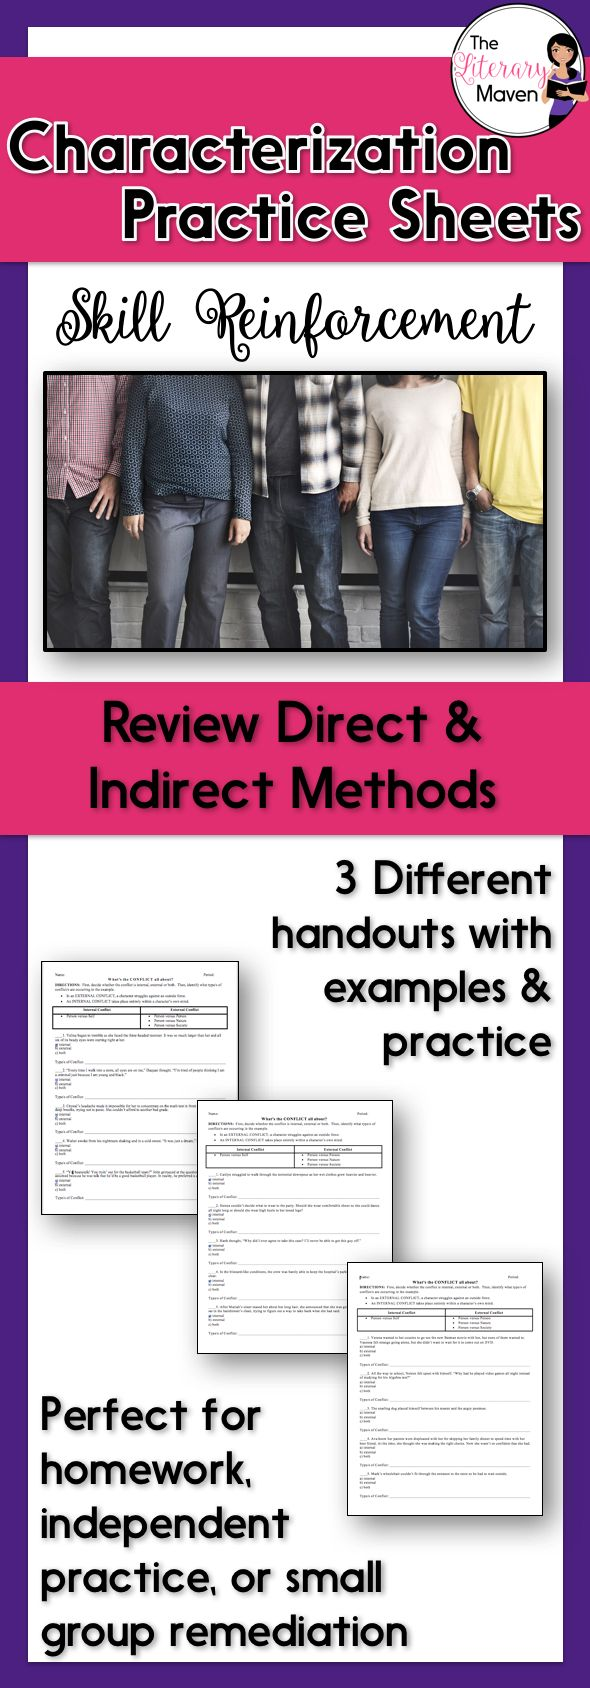 These three handouts allow students to practice identifying character traits and categorizing the type of characterization: direct characterization or indirection characterization through speech, thoughts and feelings, effects on other characters, actions, or looks. Each handout lists the different methods of characterization, and provides an example and seven additional practice scenarios. These handouts could be used for homework, in-class independent practice, or small group remediation.